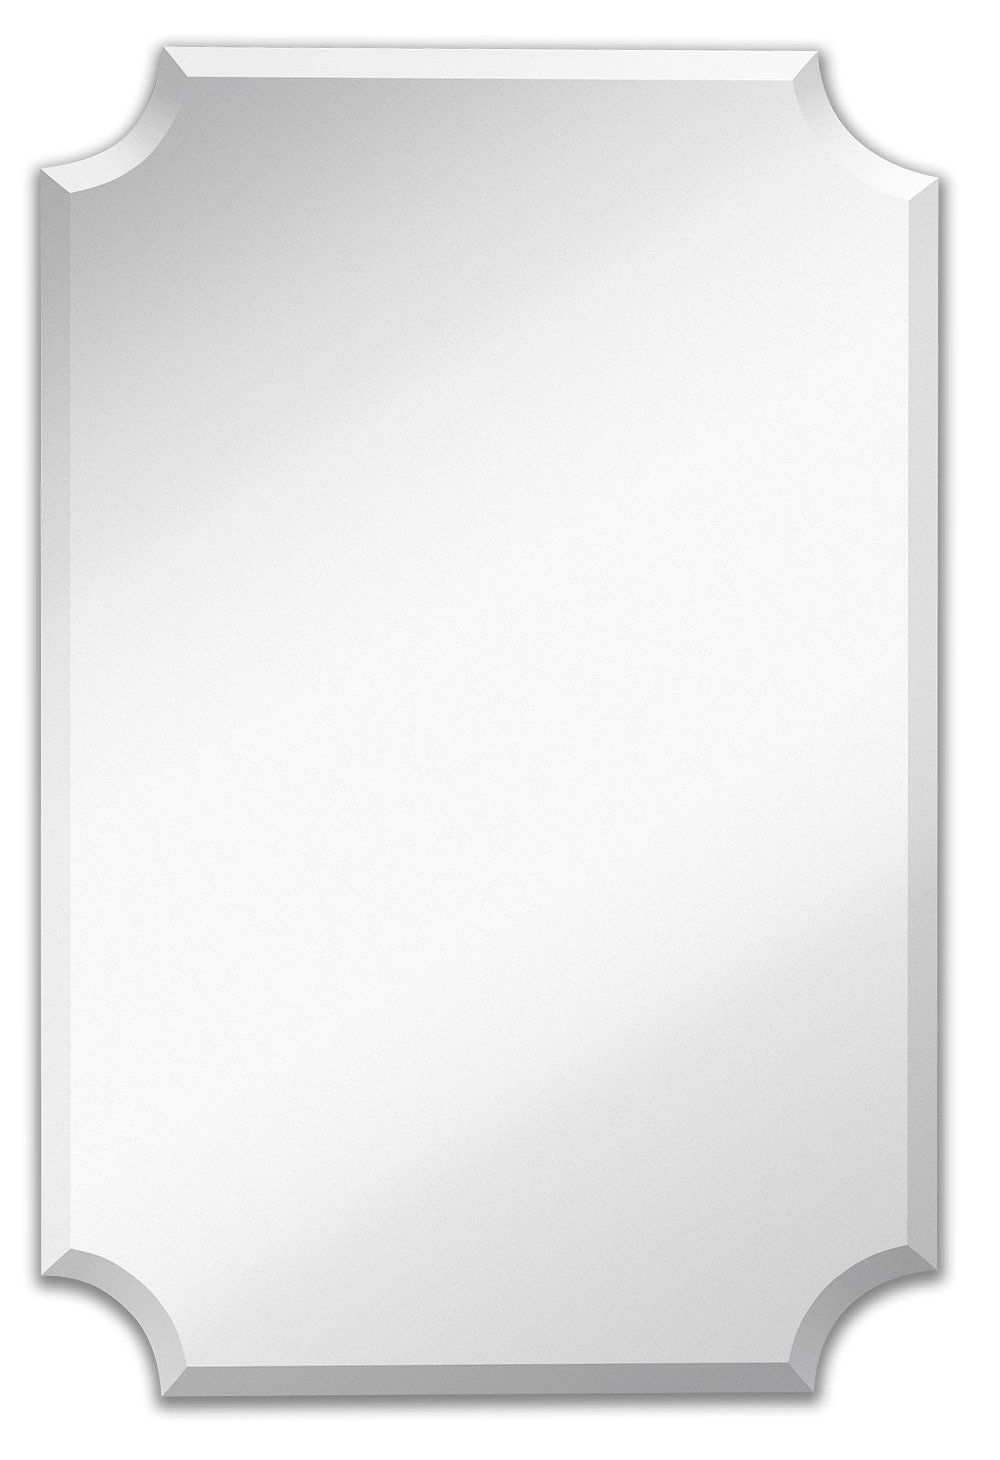 Amazon Com Large Beveled Scalloped Edge Rectangular Wall Mirror 1 Inch Bevel Curved Corners Rectangle Mirrored G Mirror Wall Rectangle Mirror Mirrored Glass